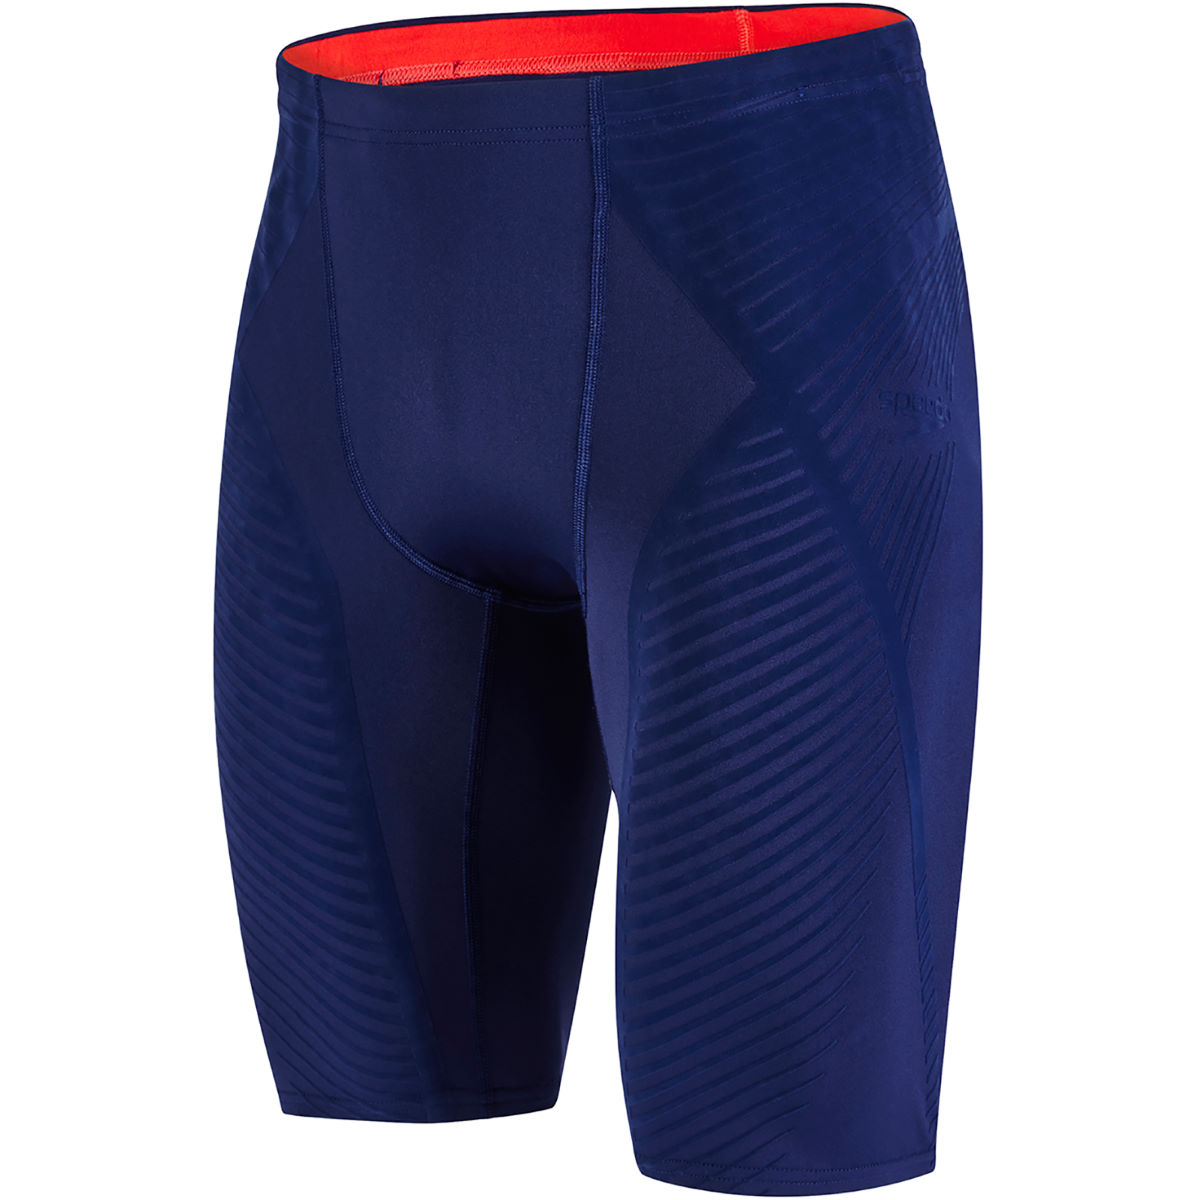 Jammer Speedo Fit Power Form - 38 Navy/Lava Red